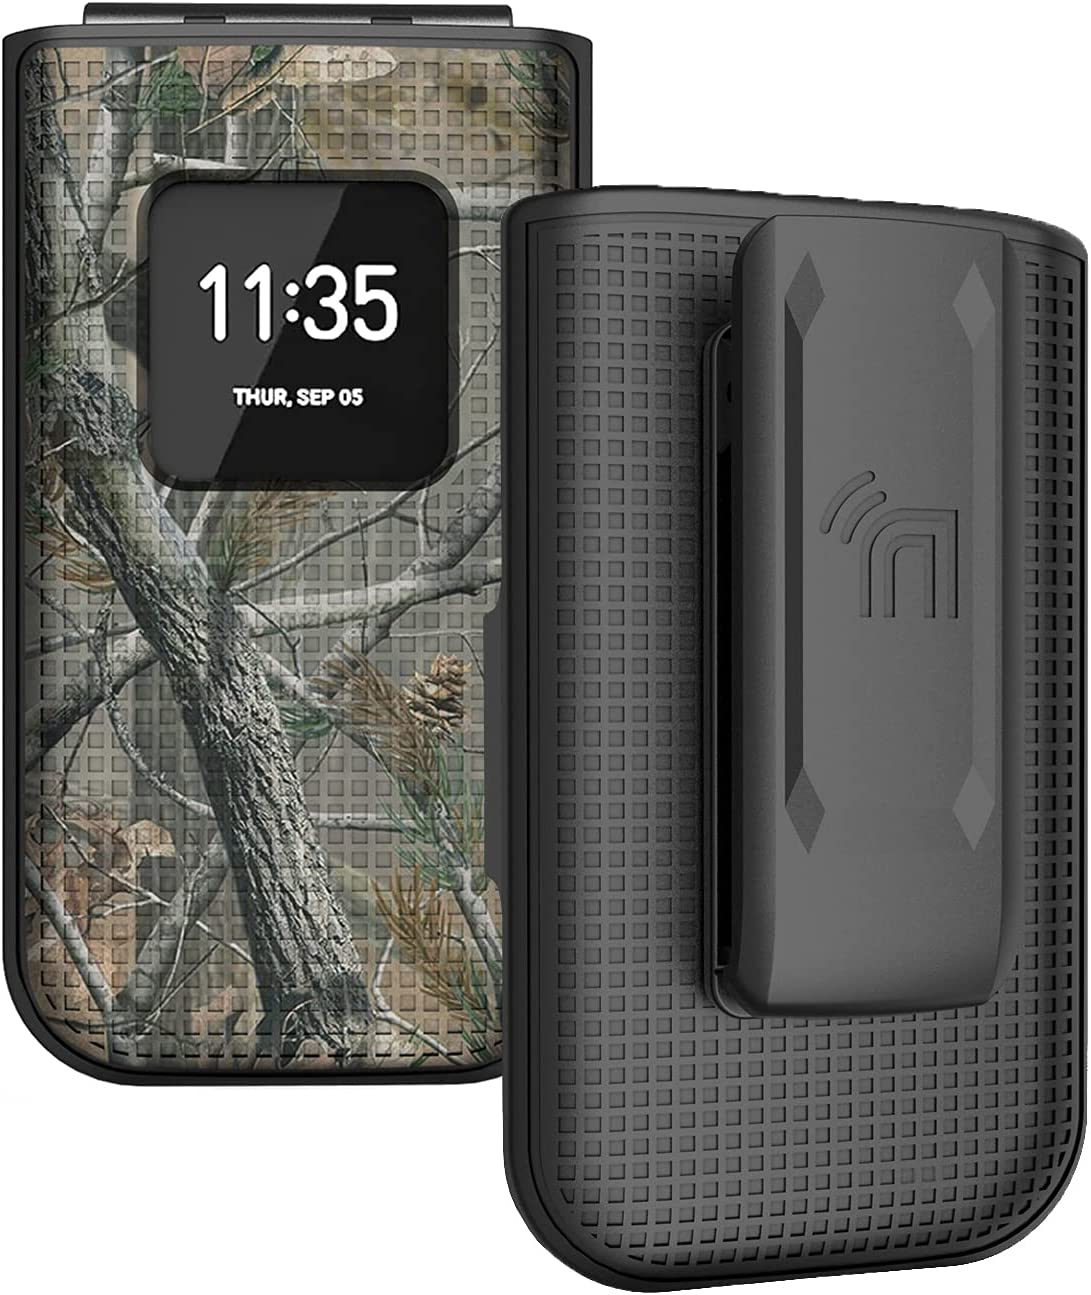 Case with Clip for Nokia 2720 V Flip Phone, Nakedcellphone [Outdoor Camouflage] Tree Leaf Real Woods Camo Cover with [Rotating/Ratchet] Belt Hip Holster Holder for Verizon TA-1295